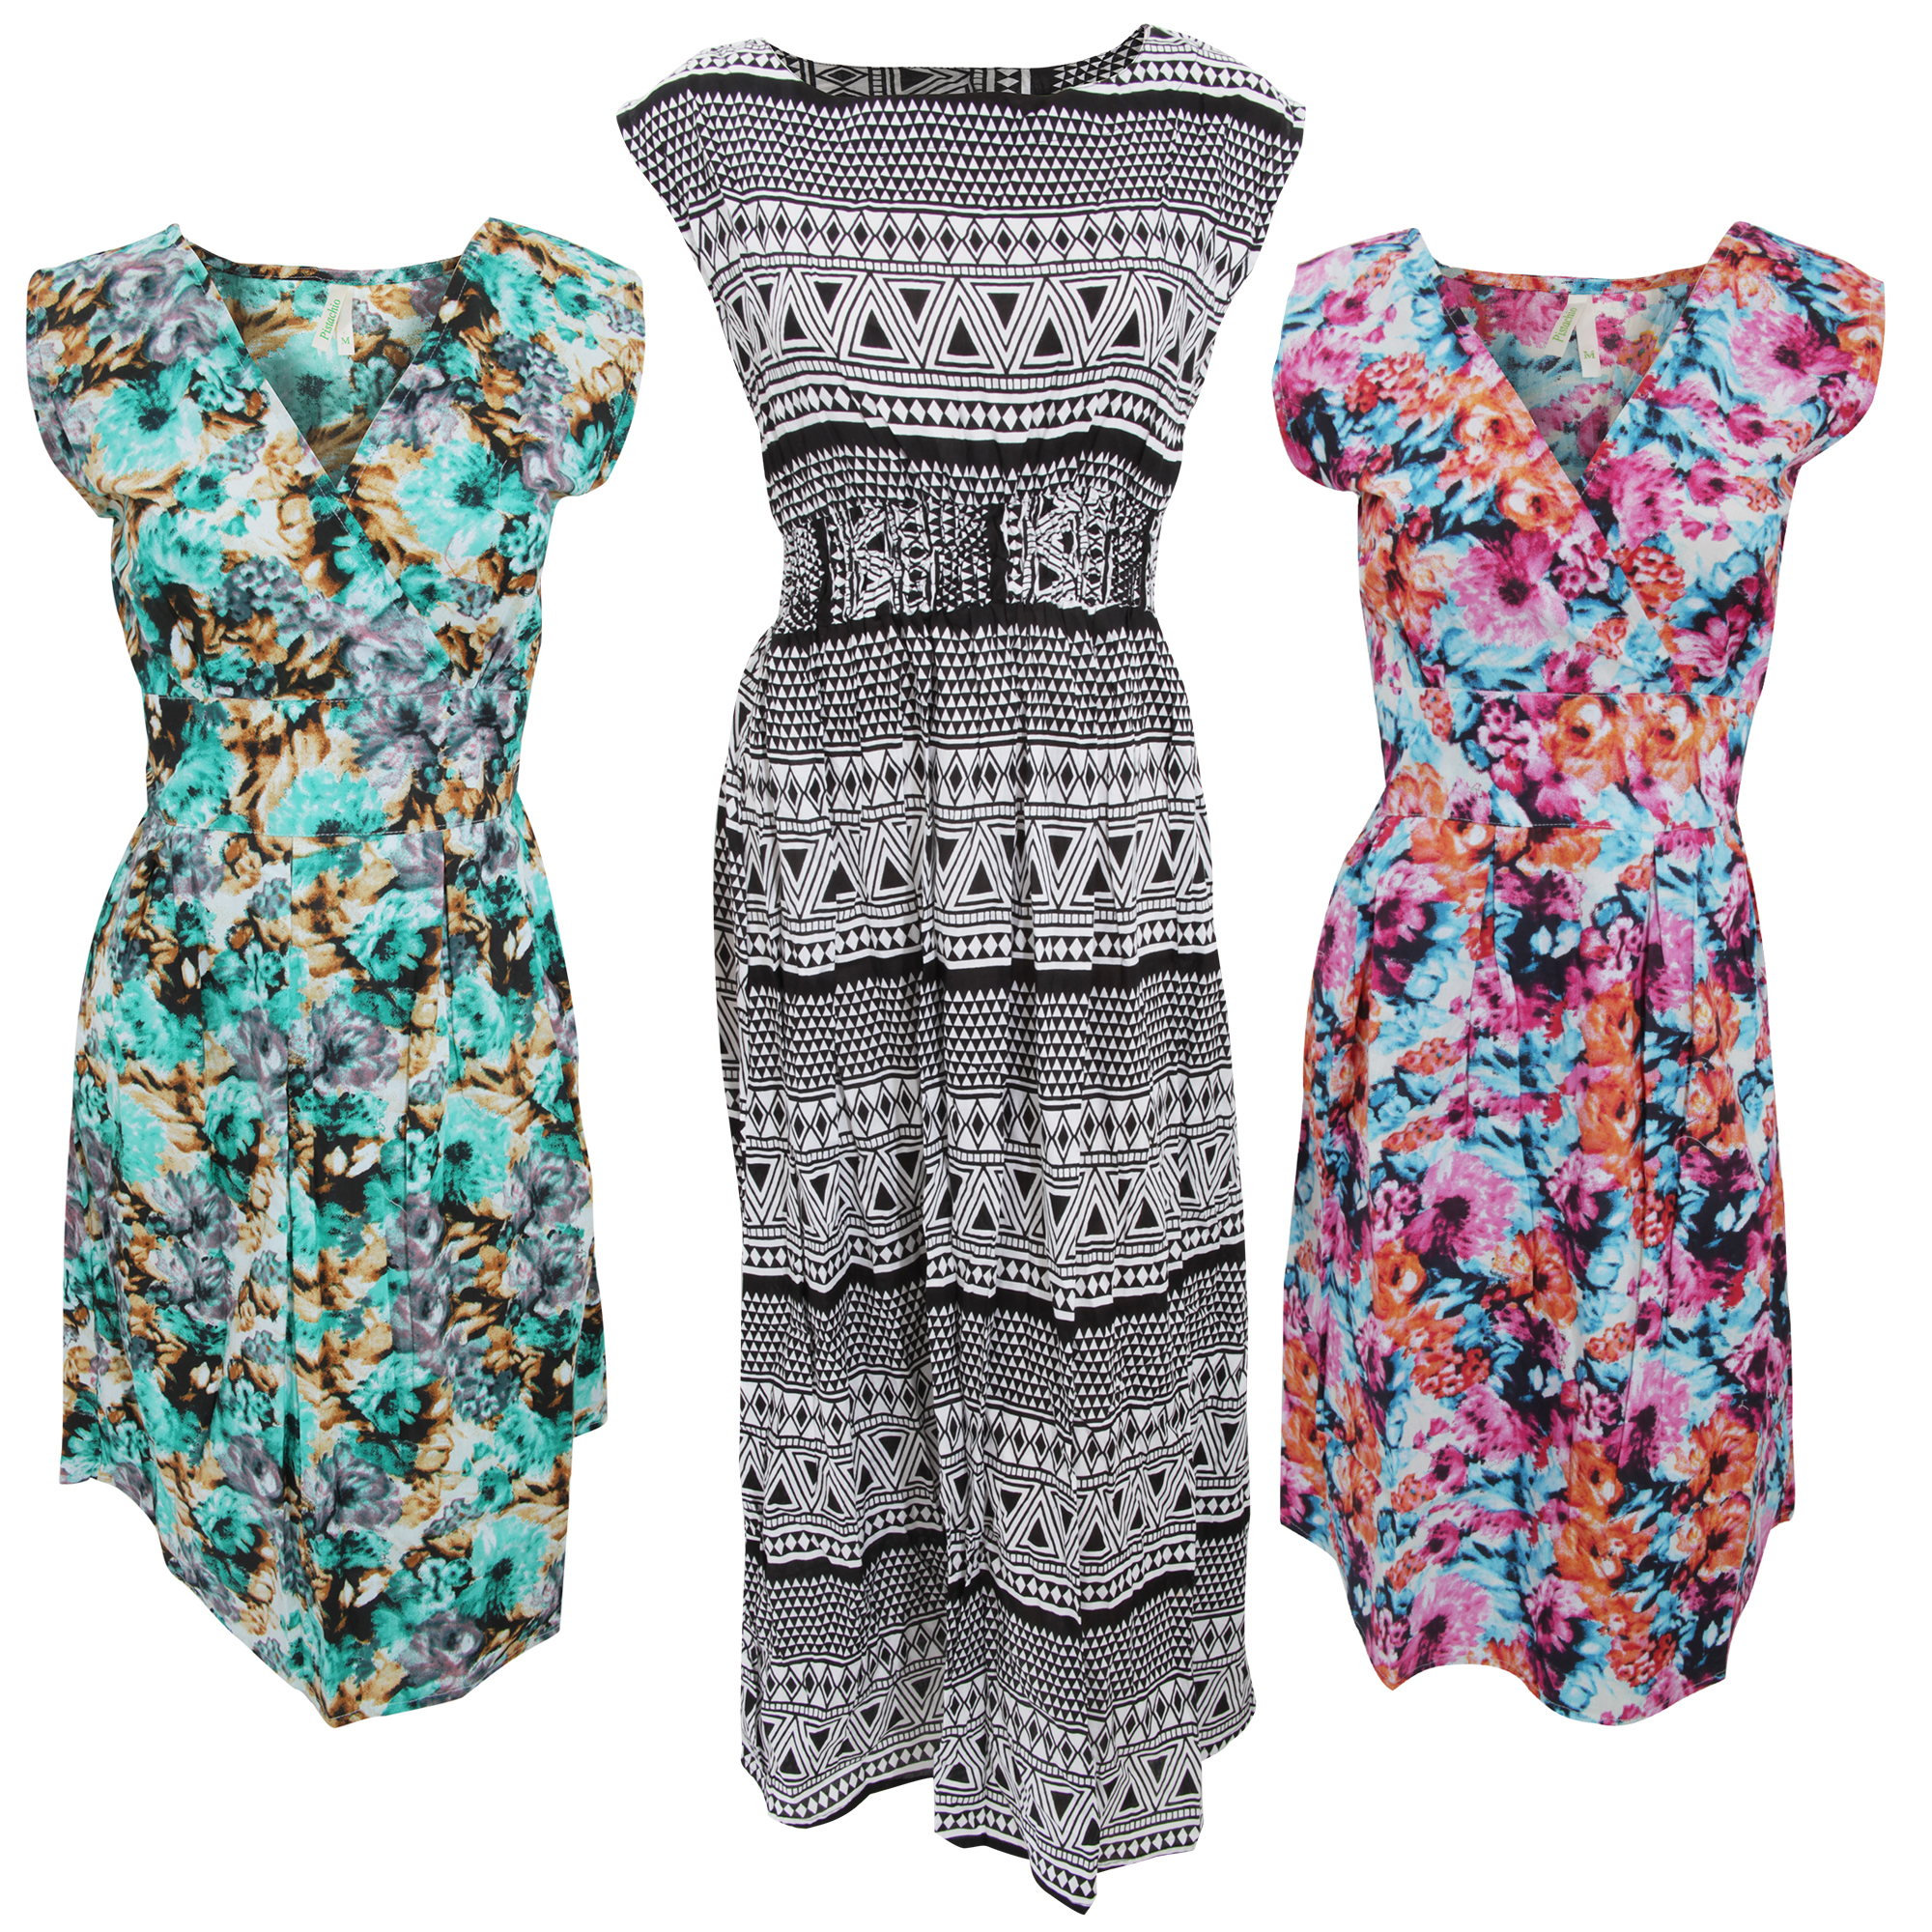 Bulk, Wholesale, Job Lot, Clearance Assorted Clothing (Dresses, Tops, Footwear And More) (Box 18) (Assorted Womens Sleeveless Dresses (Set of 26))